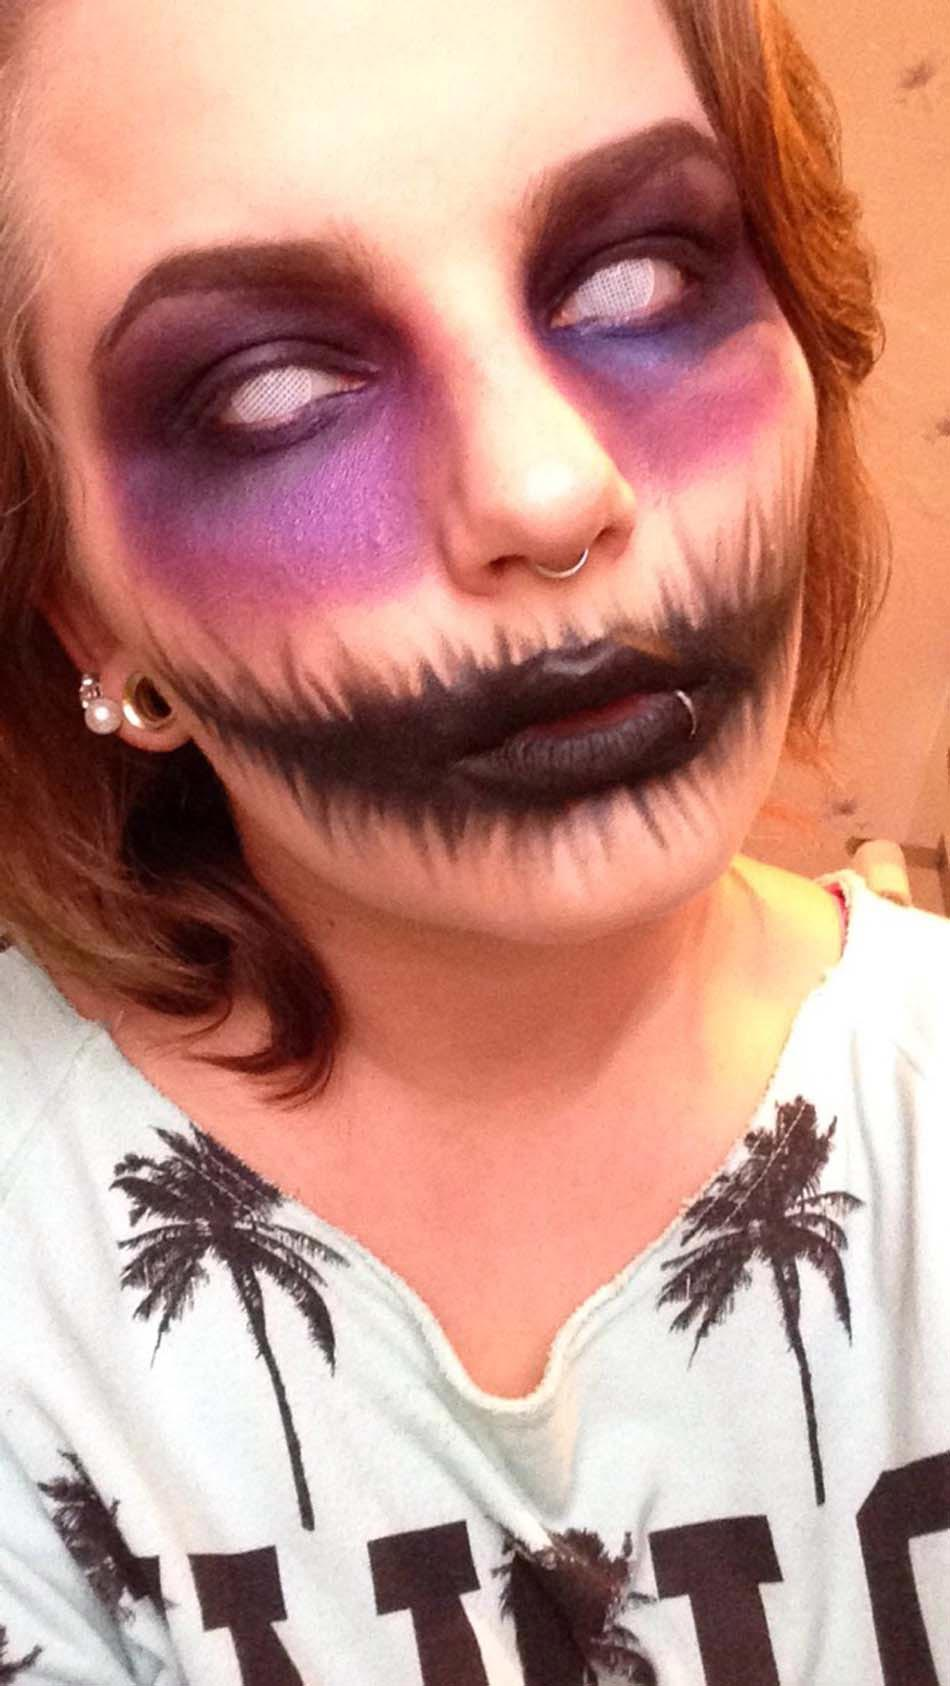 Maquillage halloween femme qui fait pas peur - Maquillage halloween simple fille ...